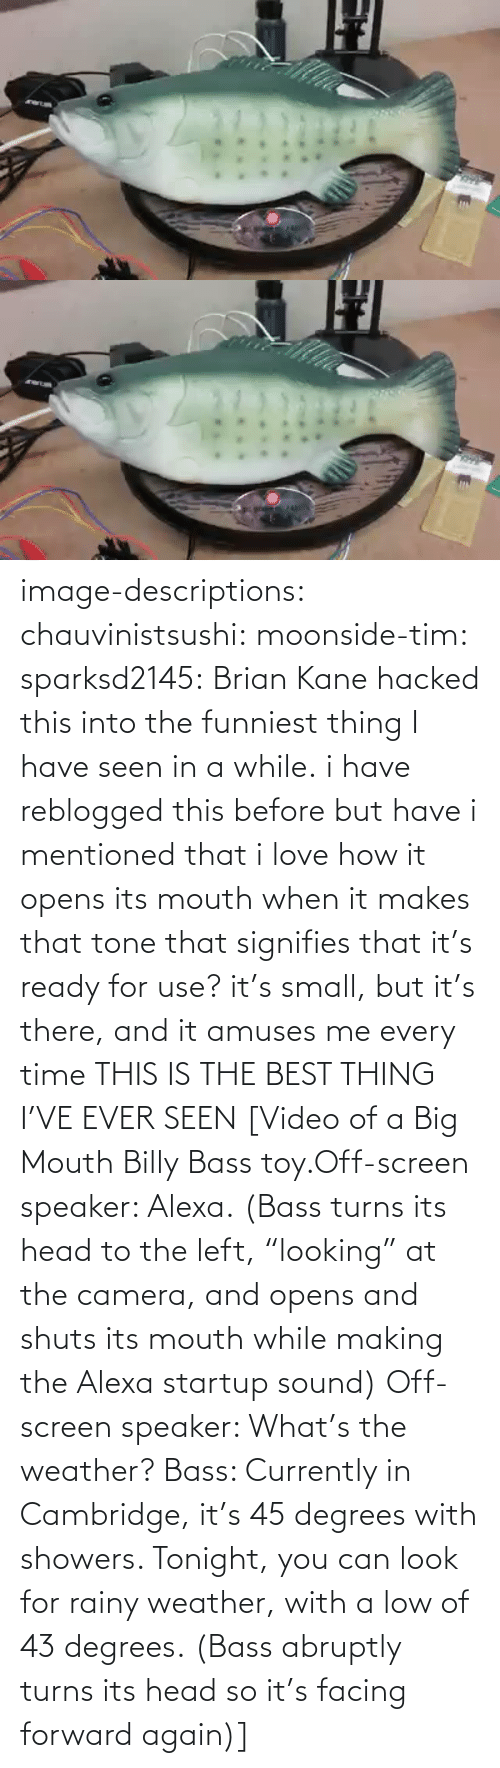 "Http: image-descriptions:  chauvinistsushi:  moonside-tim:  sparksd2145:  Brian Kane hacked this into the funniest thing I have seen in a while.  i have reblogged this before but have i mentioned that i love how it opens its mouth when it makes that tone that signifies that it's ready for use? it's small, but it's there, and it amuses me every time  THIS IS THE BEST THING I'VE EVER SEEN  [Video of a Big Mouth Billy Bass toy.Off-screen speaker: Alexa. (Bass turns its head to the left, ""looking"" at the camera, and opens and shuts its mouth while making the Alexa startup sound)  Off-screen speaker: What's the weather? Bass: Currently in Cambridge, it's 45 degrees with showers. Tonight, you can look for rainy weather, with a low of 43 degrees. (Bass abruptly turns its head so it's facing forward again)]"